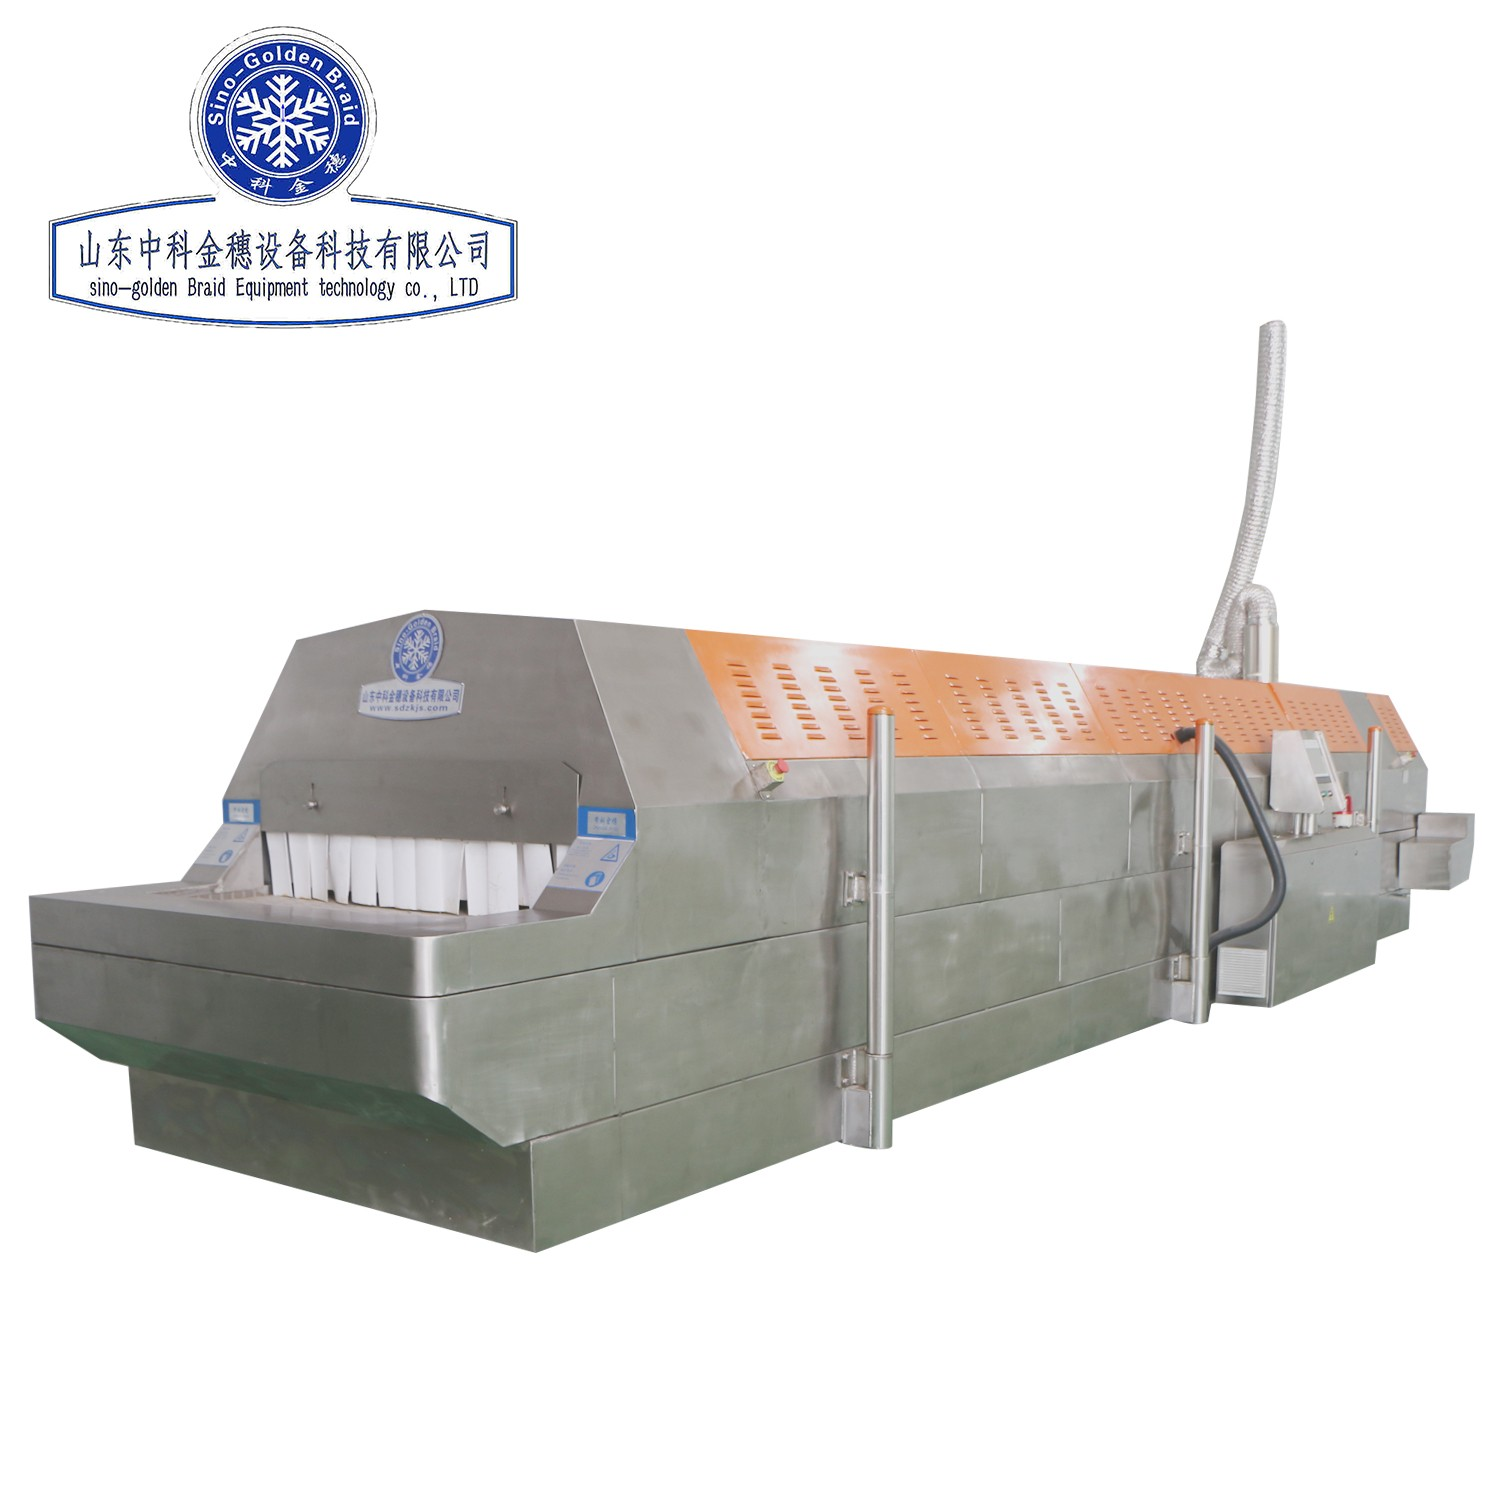 Iqf tunnel Freezer Manufacturers, Iqf tunnel Freezer Factory, Supply Iqf tunnel Freezer